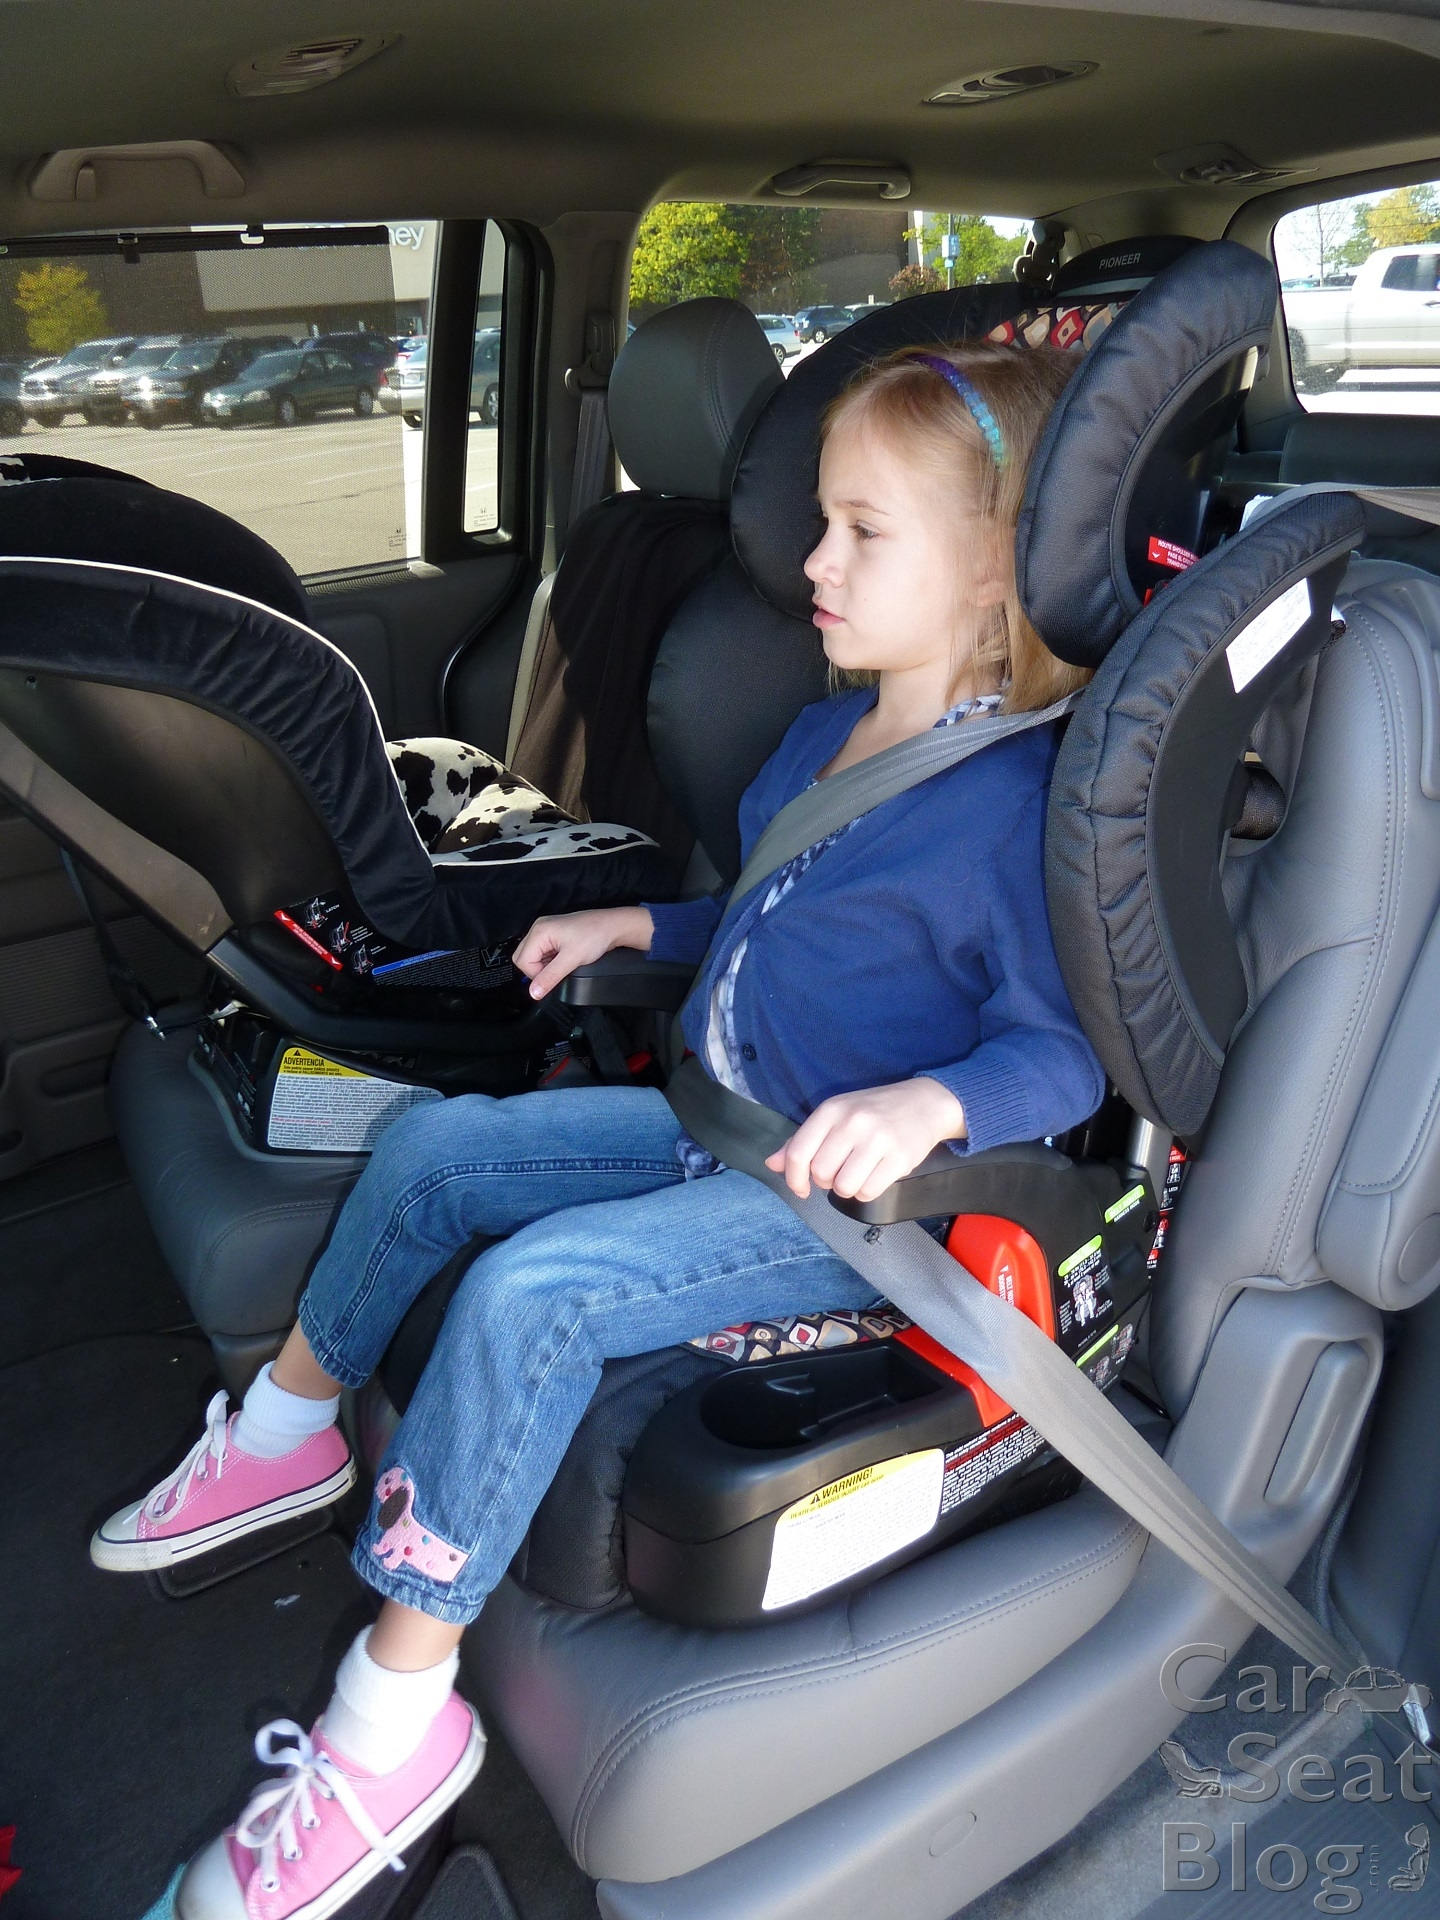 Britax Car Seat Date Of Manufacture Carseatblog The Most Trusted Source For Car Seat Reviews